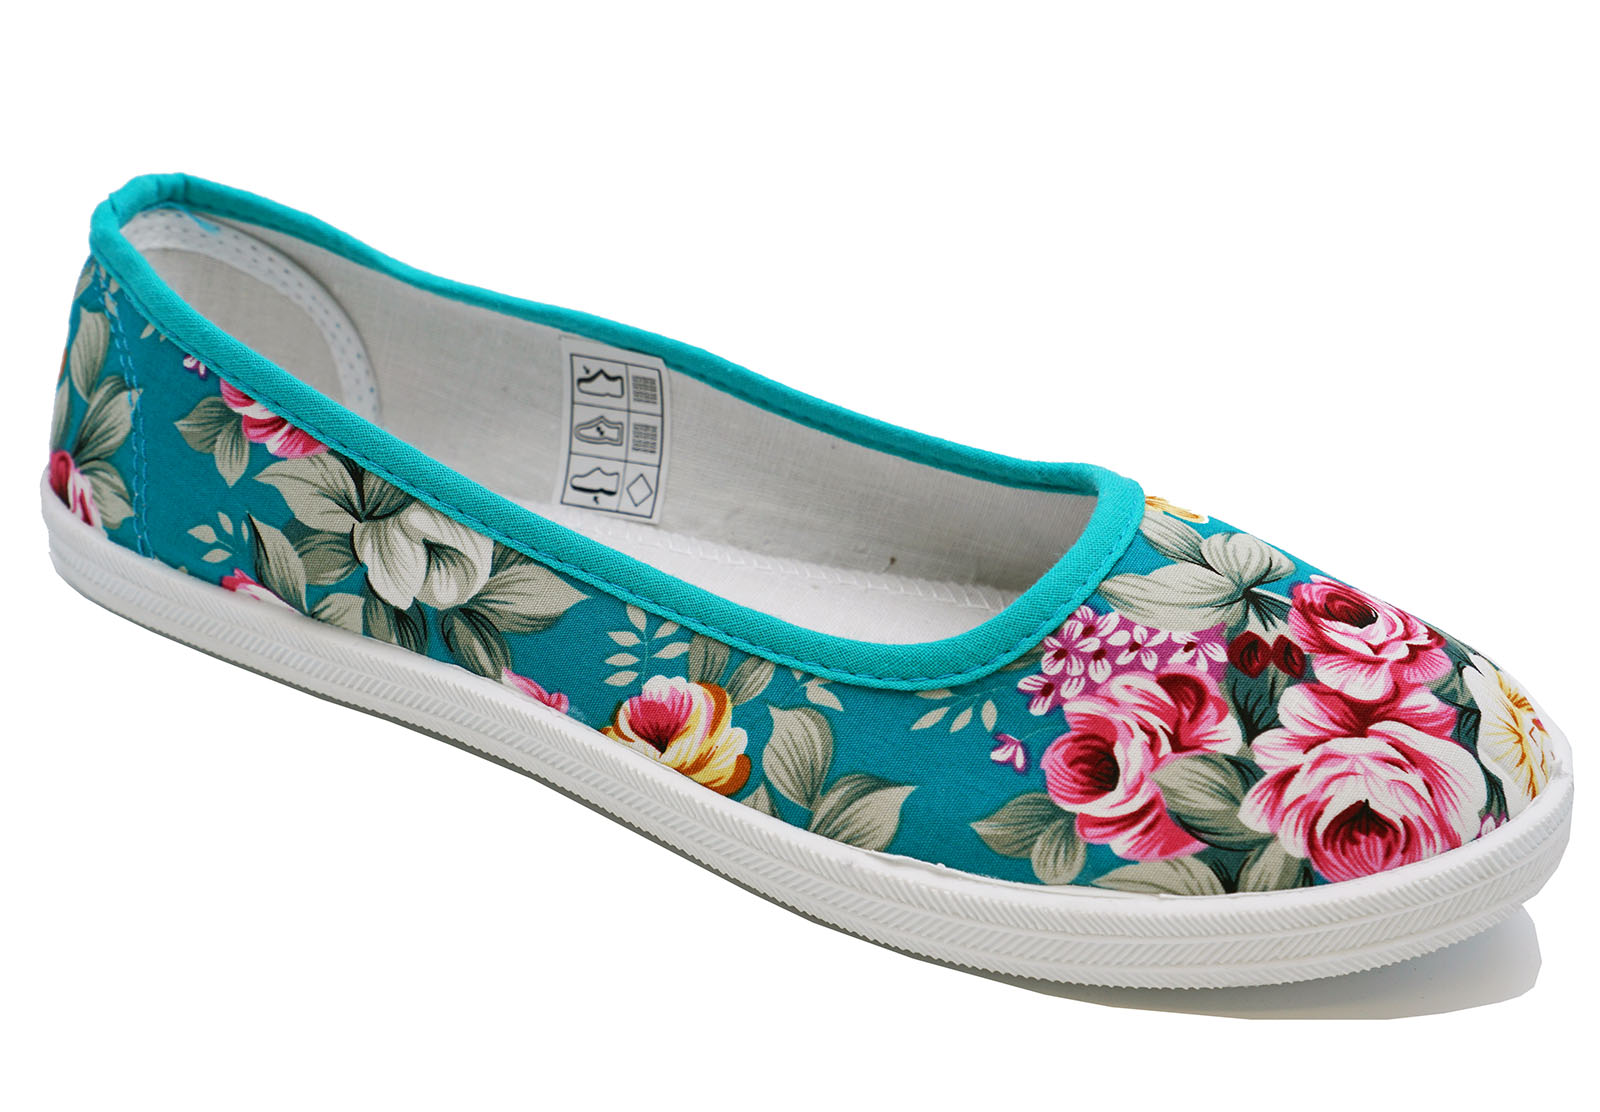 LADIES GREEN FLORAL CANVAS FLAT SLIP-ON PLIMSOLL PUMPS CASUAL SHOES SIZES 3-8